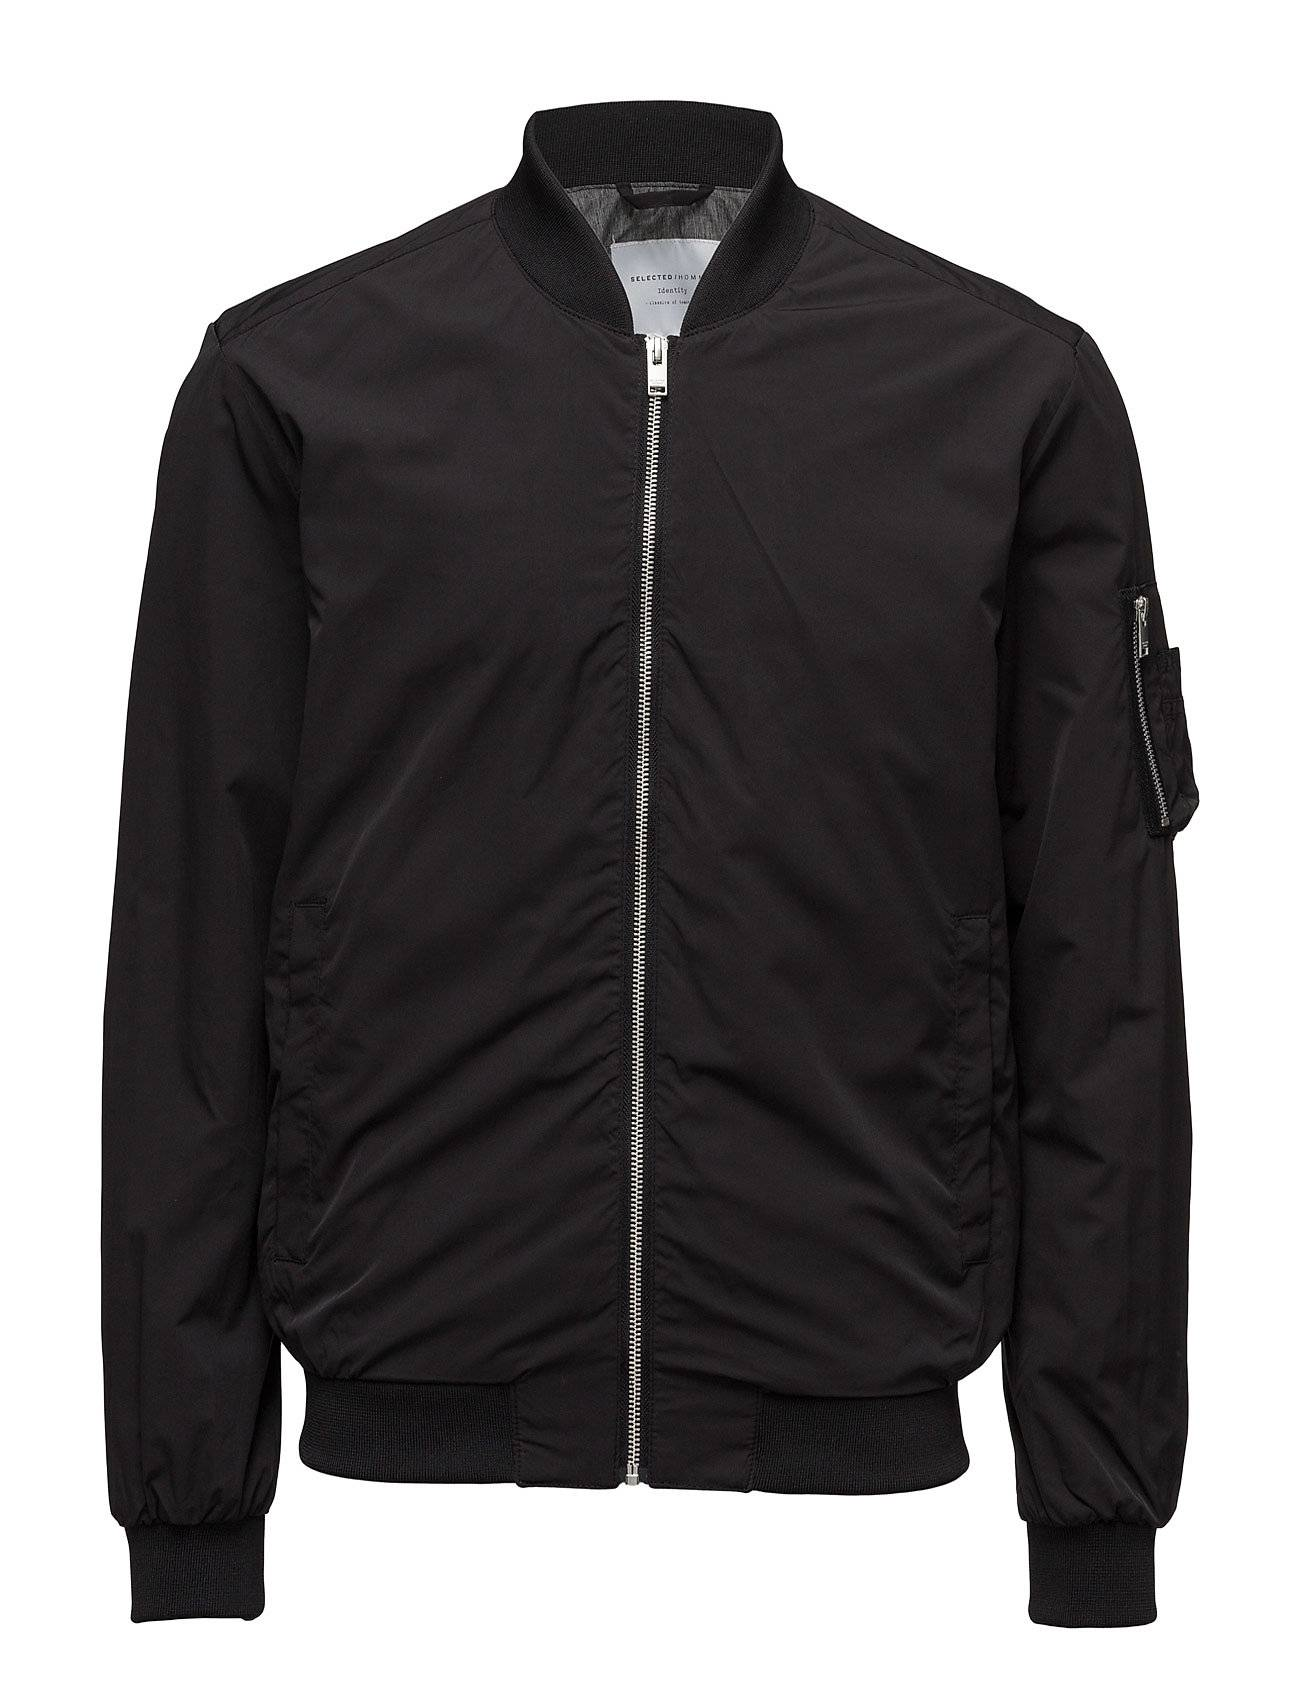 Selected Homme Shxrescue Bomber Jacket